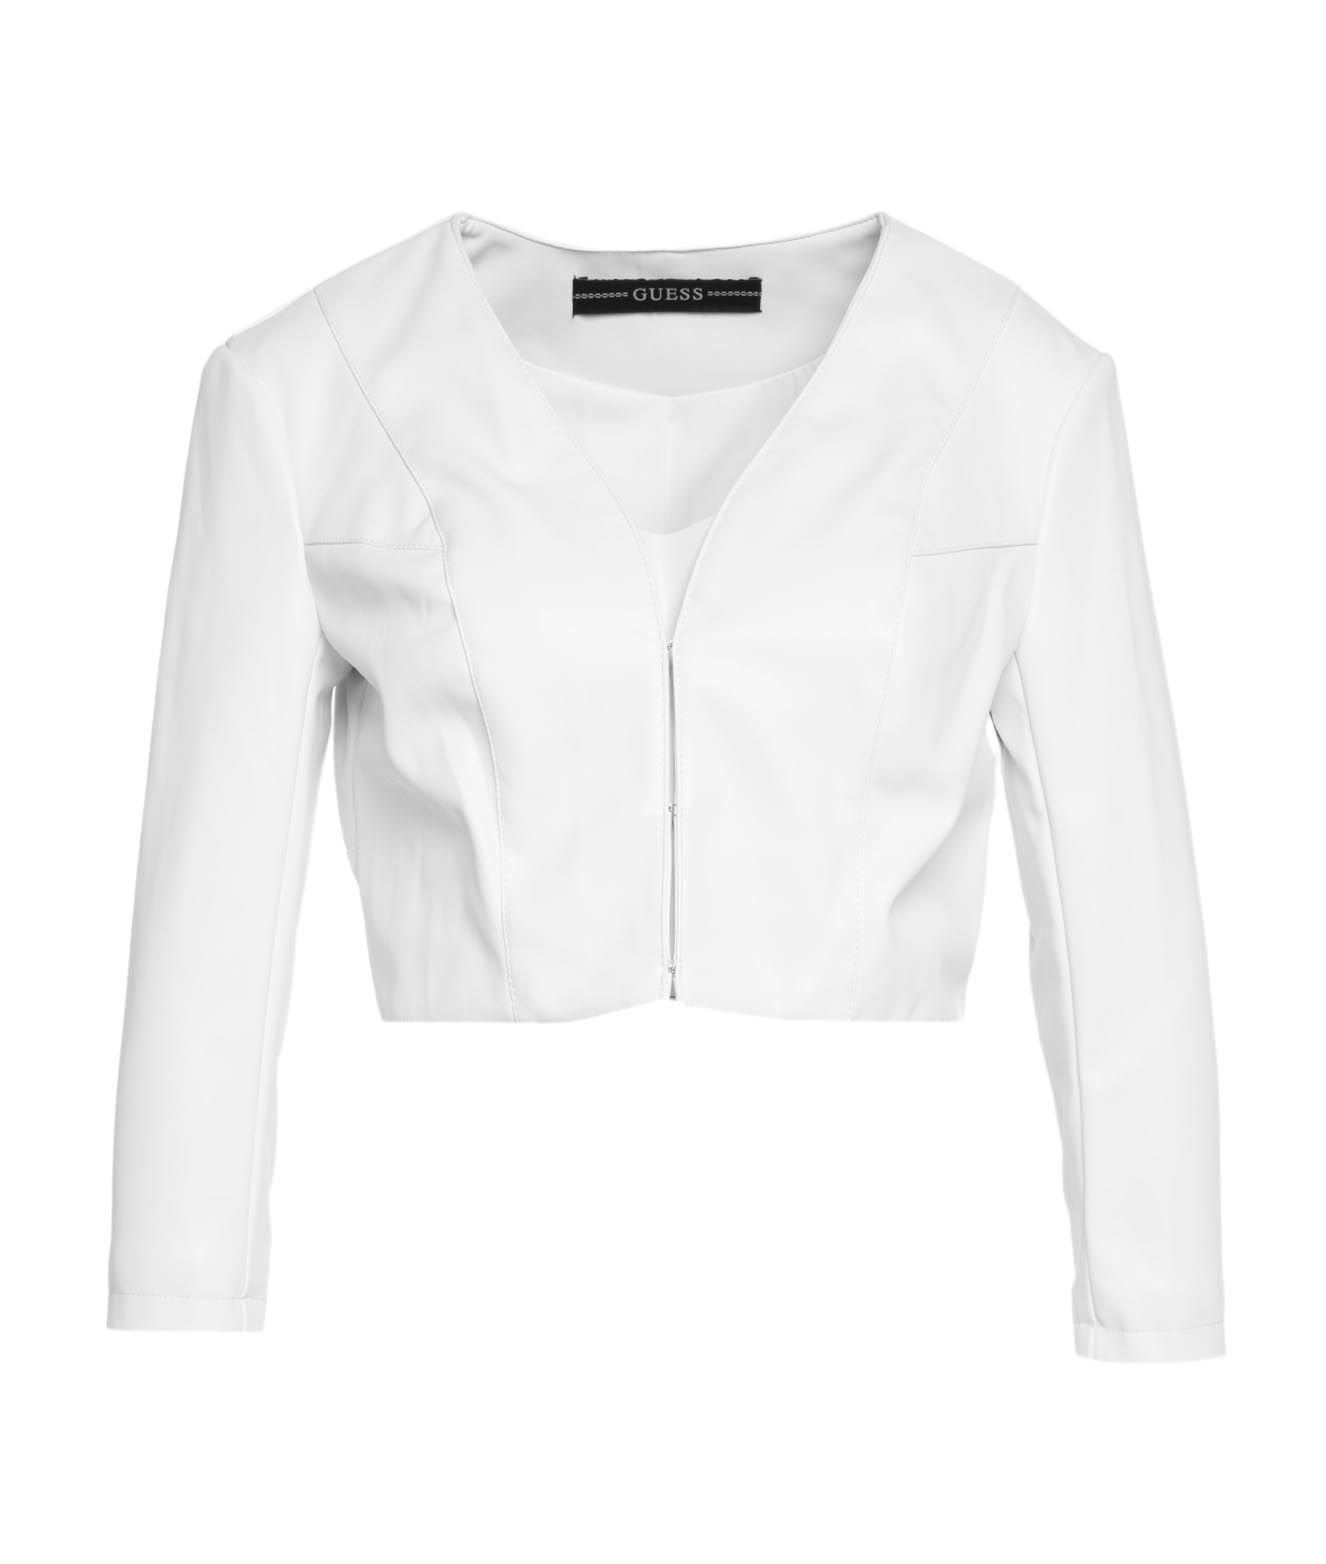 Guess GUESS WOMEN'S W1GL14WAOO011TWHT WHITE OTHER MATERIALS JACKET